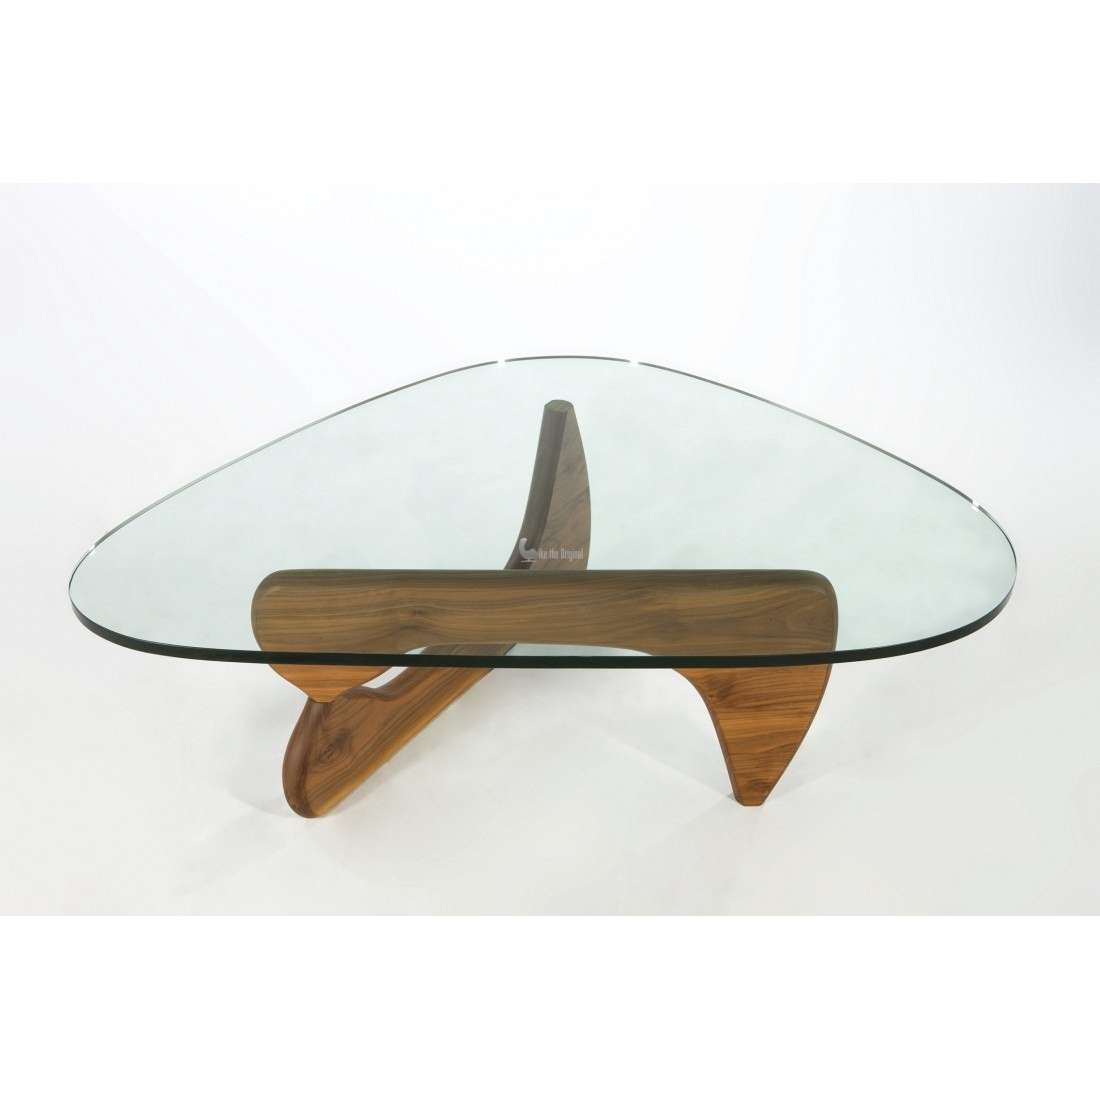 Glass Coffee Table Small Space Modern Wood Tablemetal Mid Century Intended For Most Popular Unique Glass Coffee Tables (View 10 of 20)